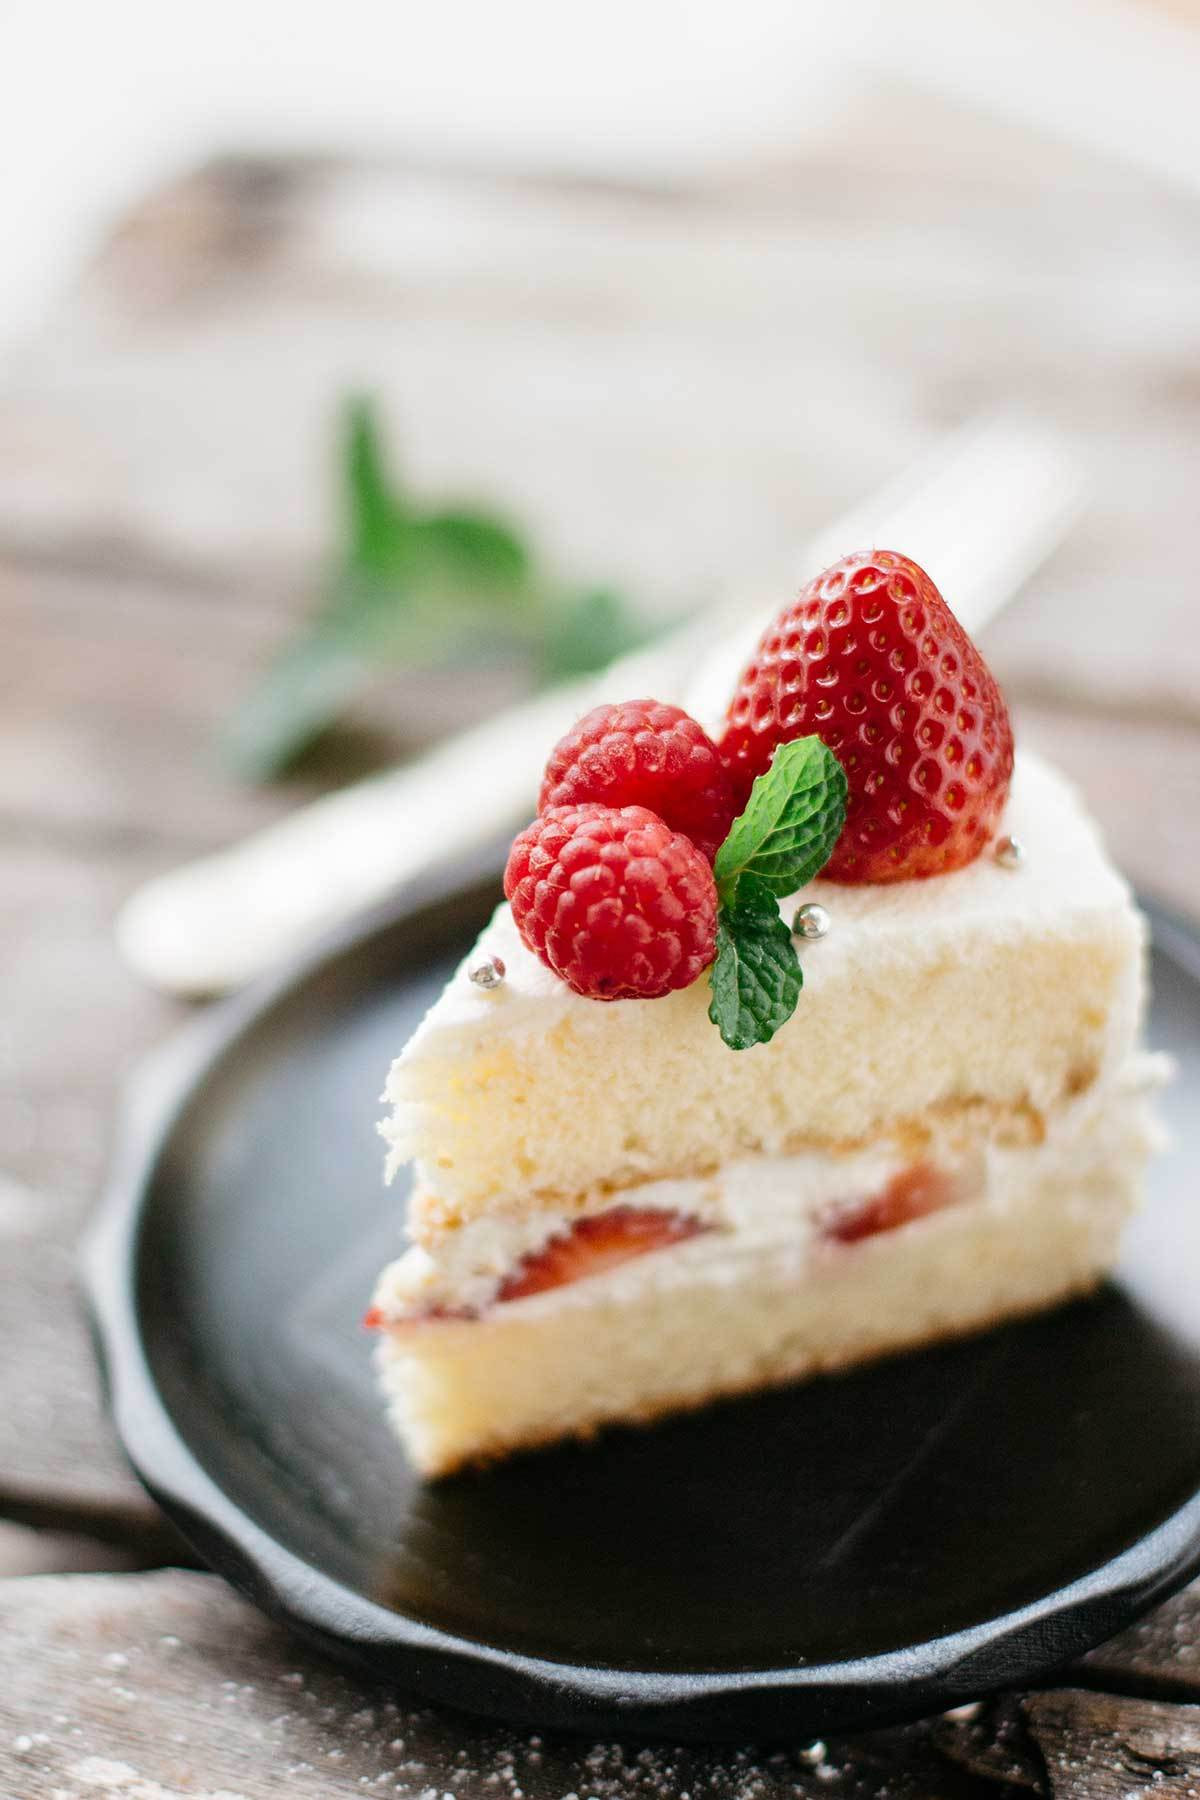 Best ideas about Japanese Birthday Cake . Save or Pin Japanese Birthday Cake 誕生日ケーキ Now.